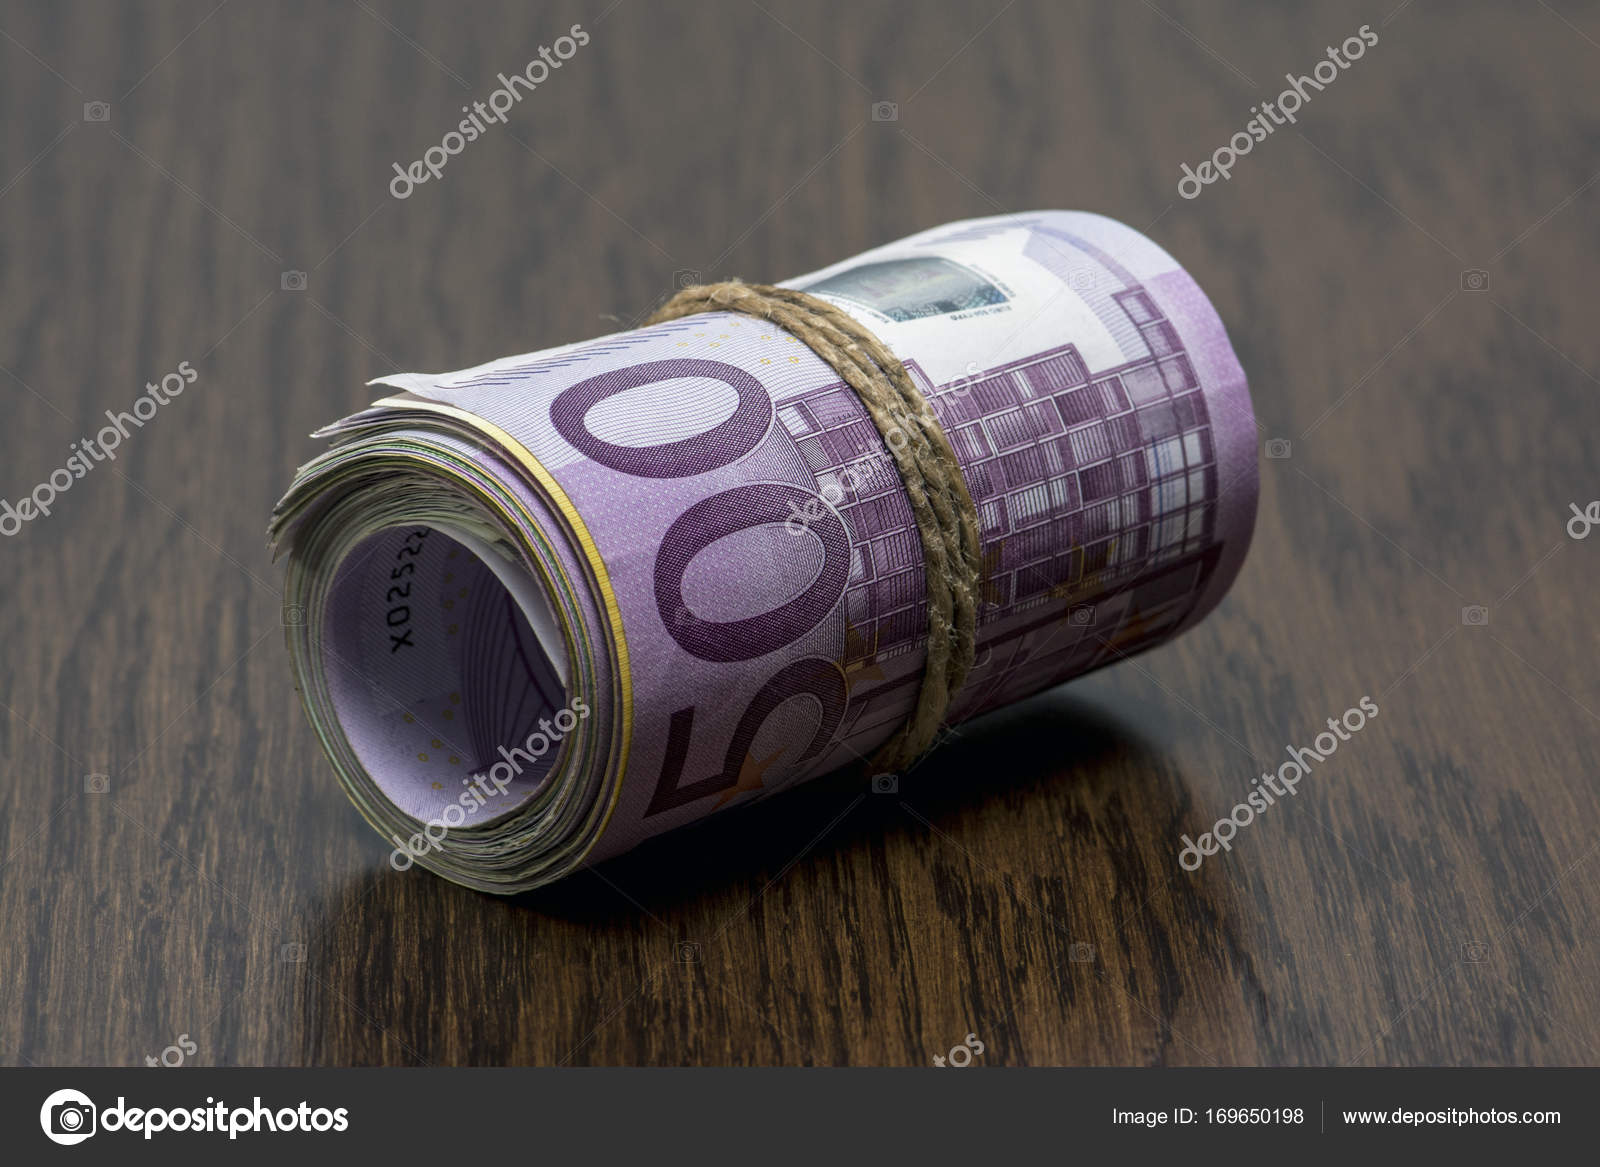 Macro Detail Of A Roll Of Euro Currency Eur With 500 200 100 And